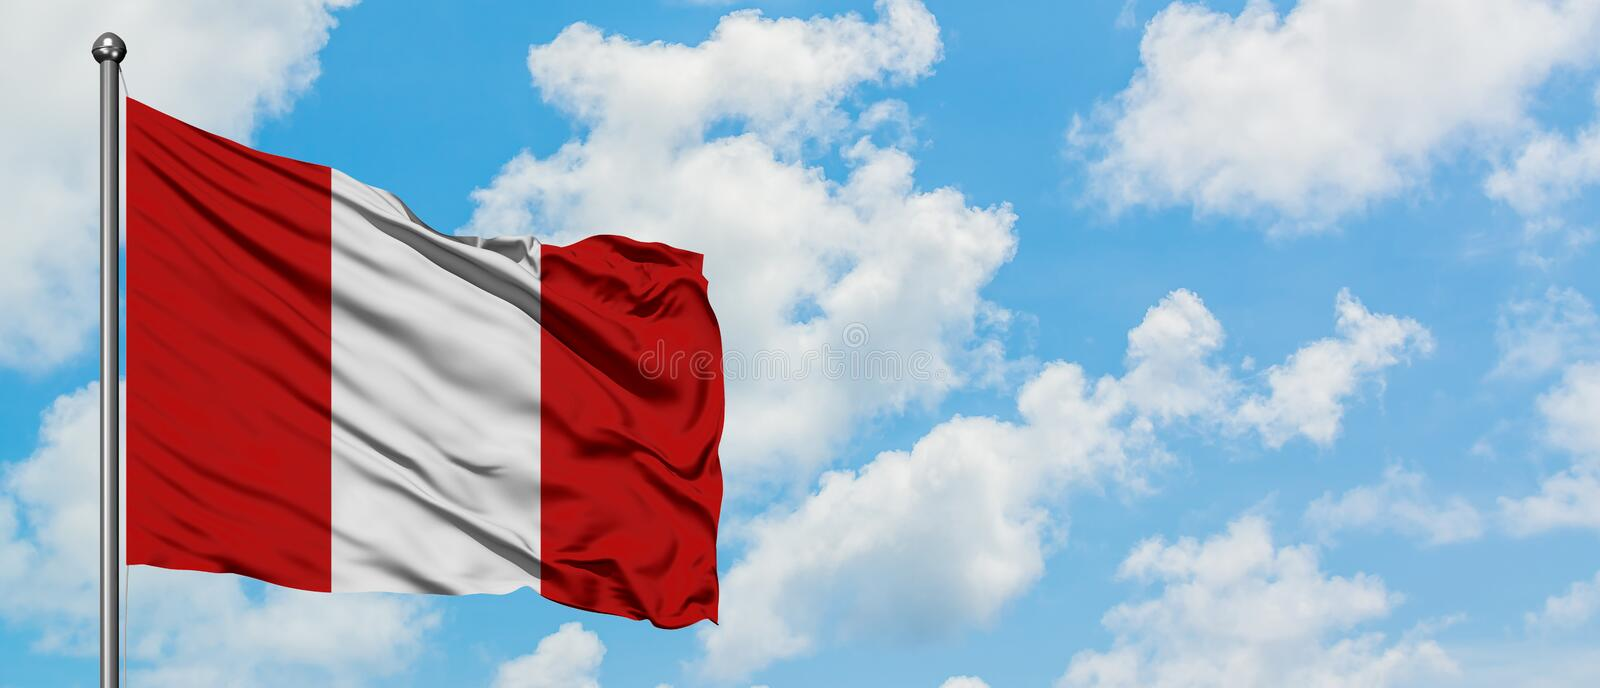 Peru flag waving in the wind against white cloudy blue sky. Diplomacy concept, international relations.  stock photography